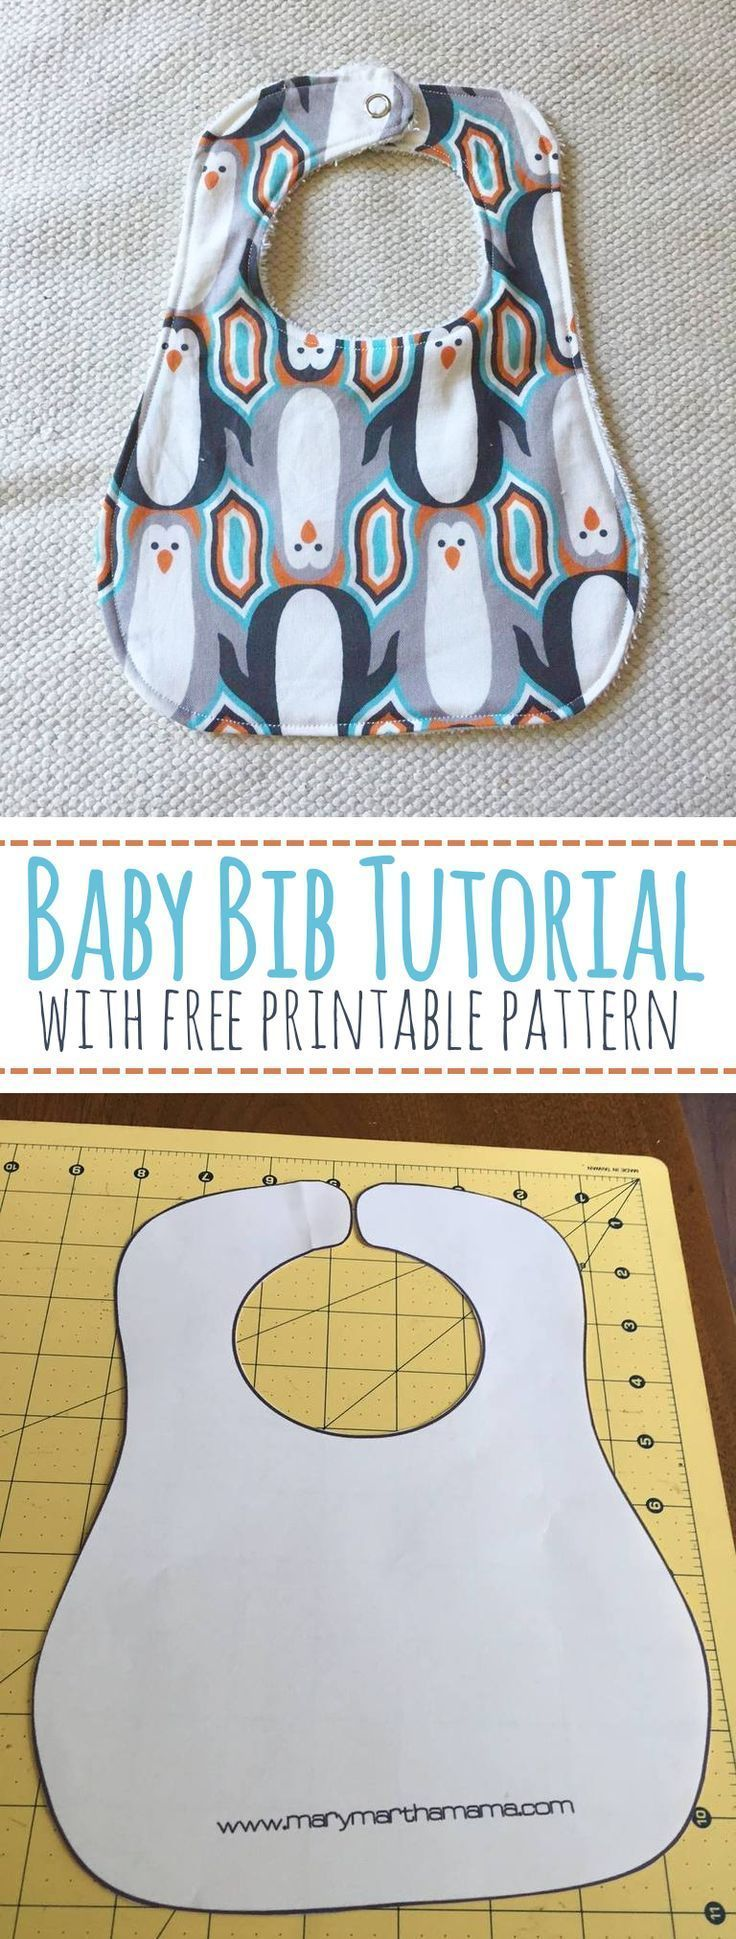 Baby Bib Tutorial with Free Printable Pattern – Mary Martha Mama- How to make a baby bib #sewing_crafts_clothes